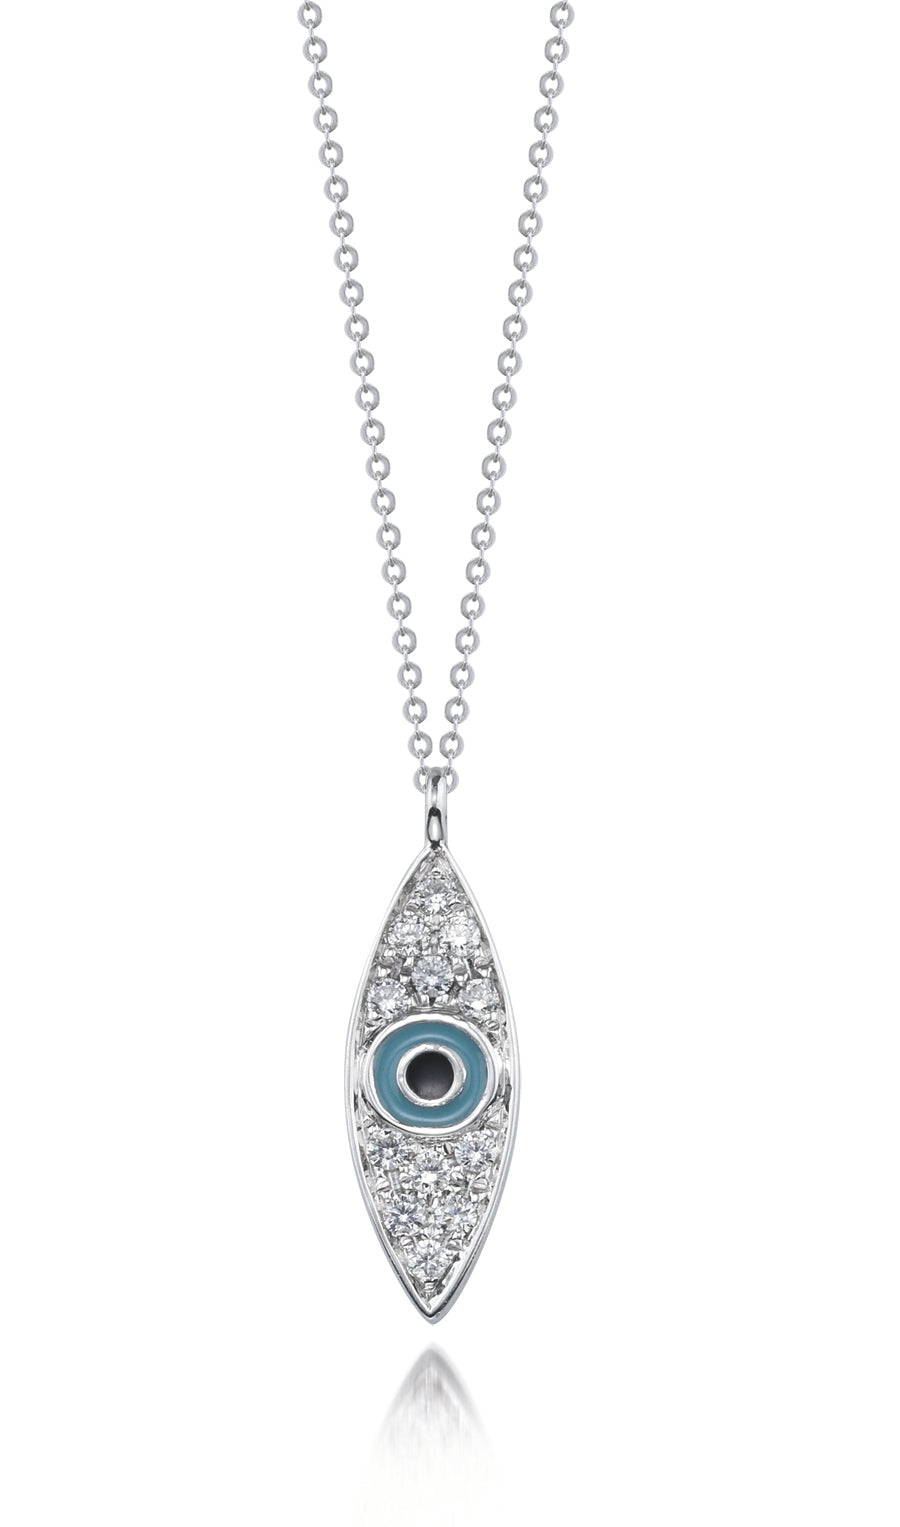 Graffiti Evil Eye Necklace